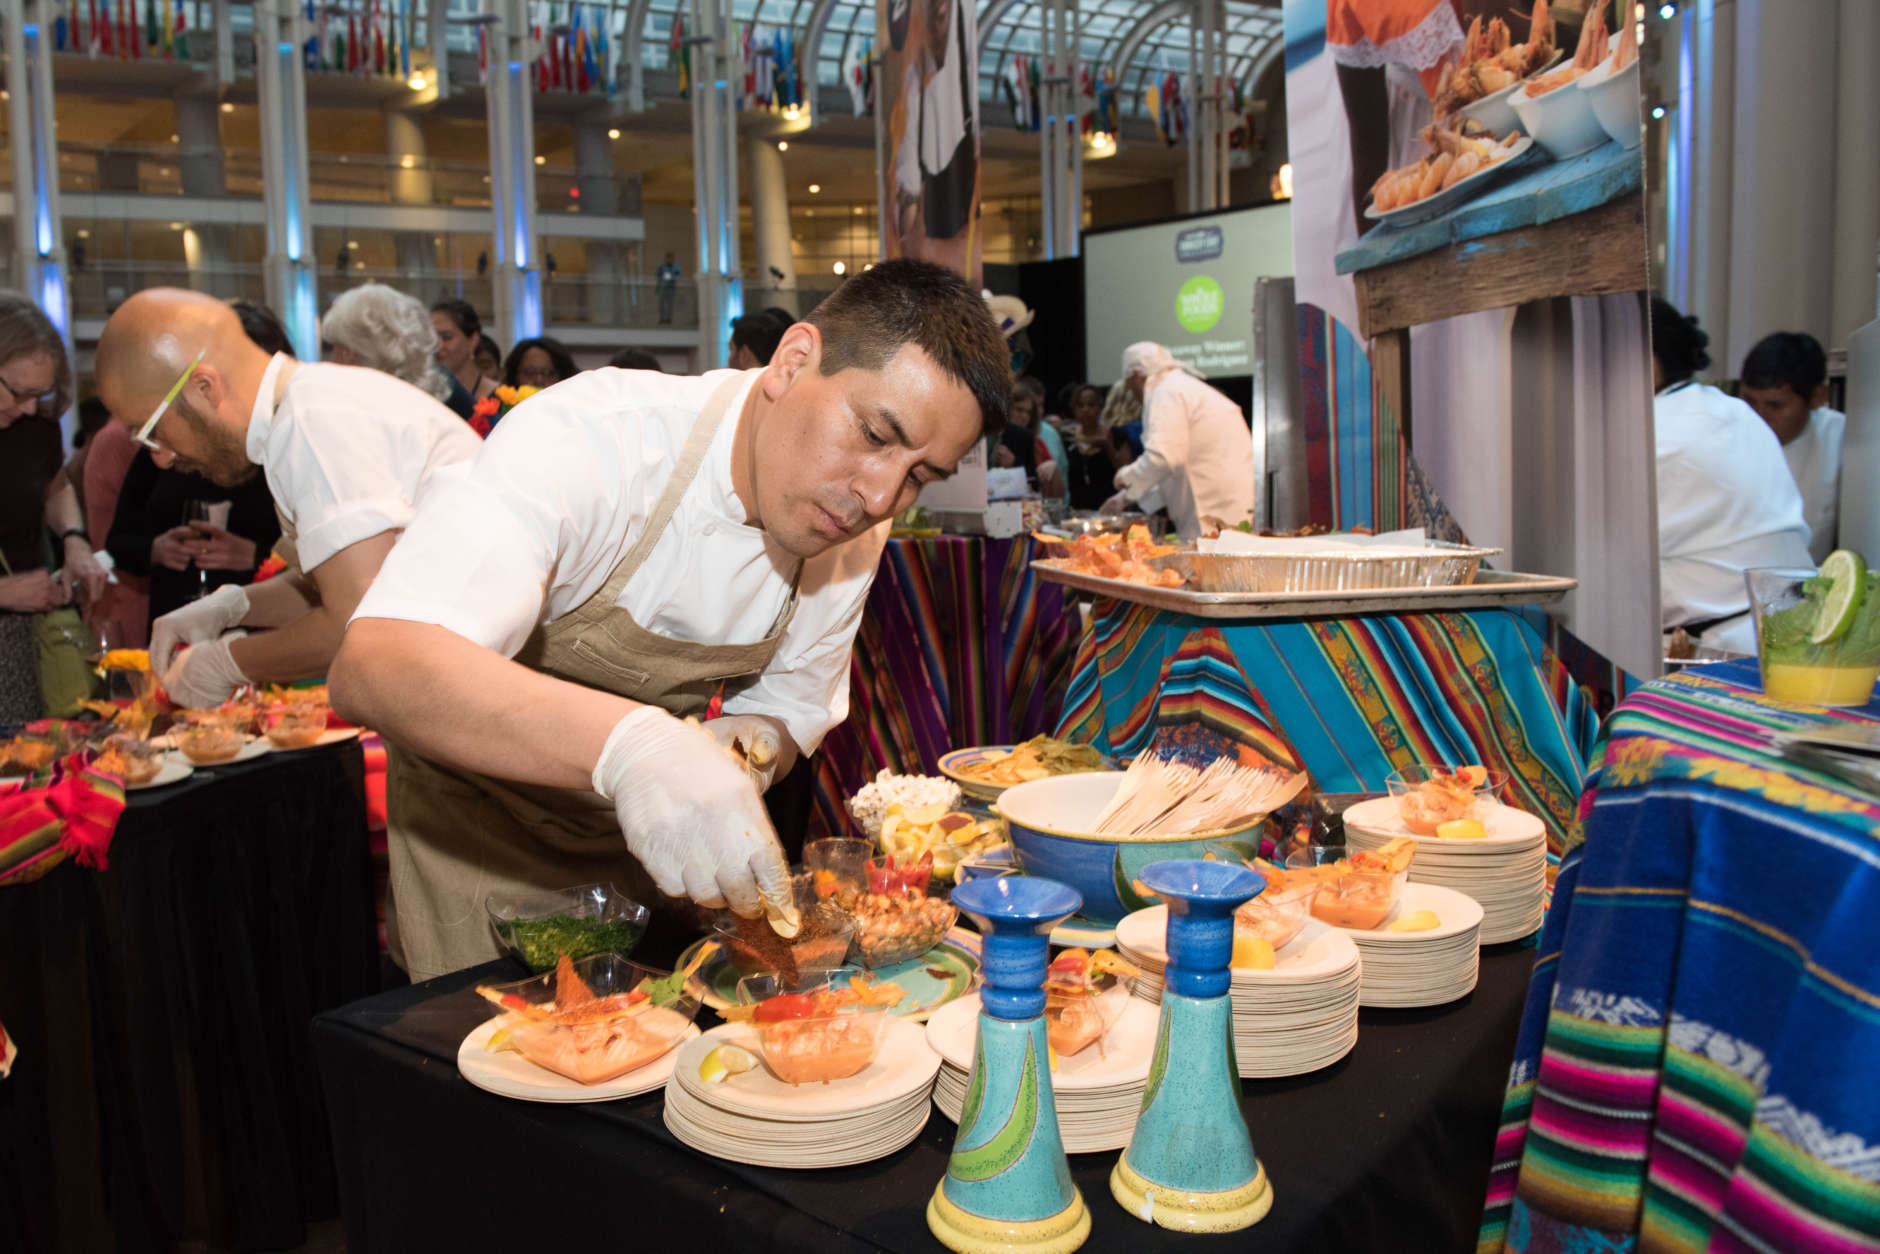 This year, the annual culinary showcase is bigger than ever, with nearly twice as many chefs battling for the title of best dish. (Courtesy Kea Taylor/Imagine Photography)